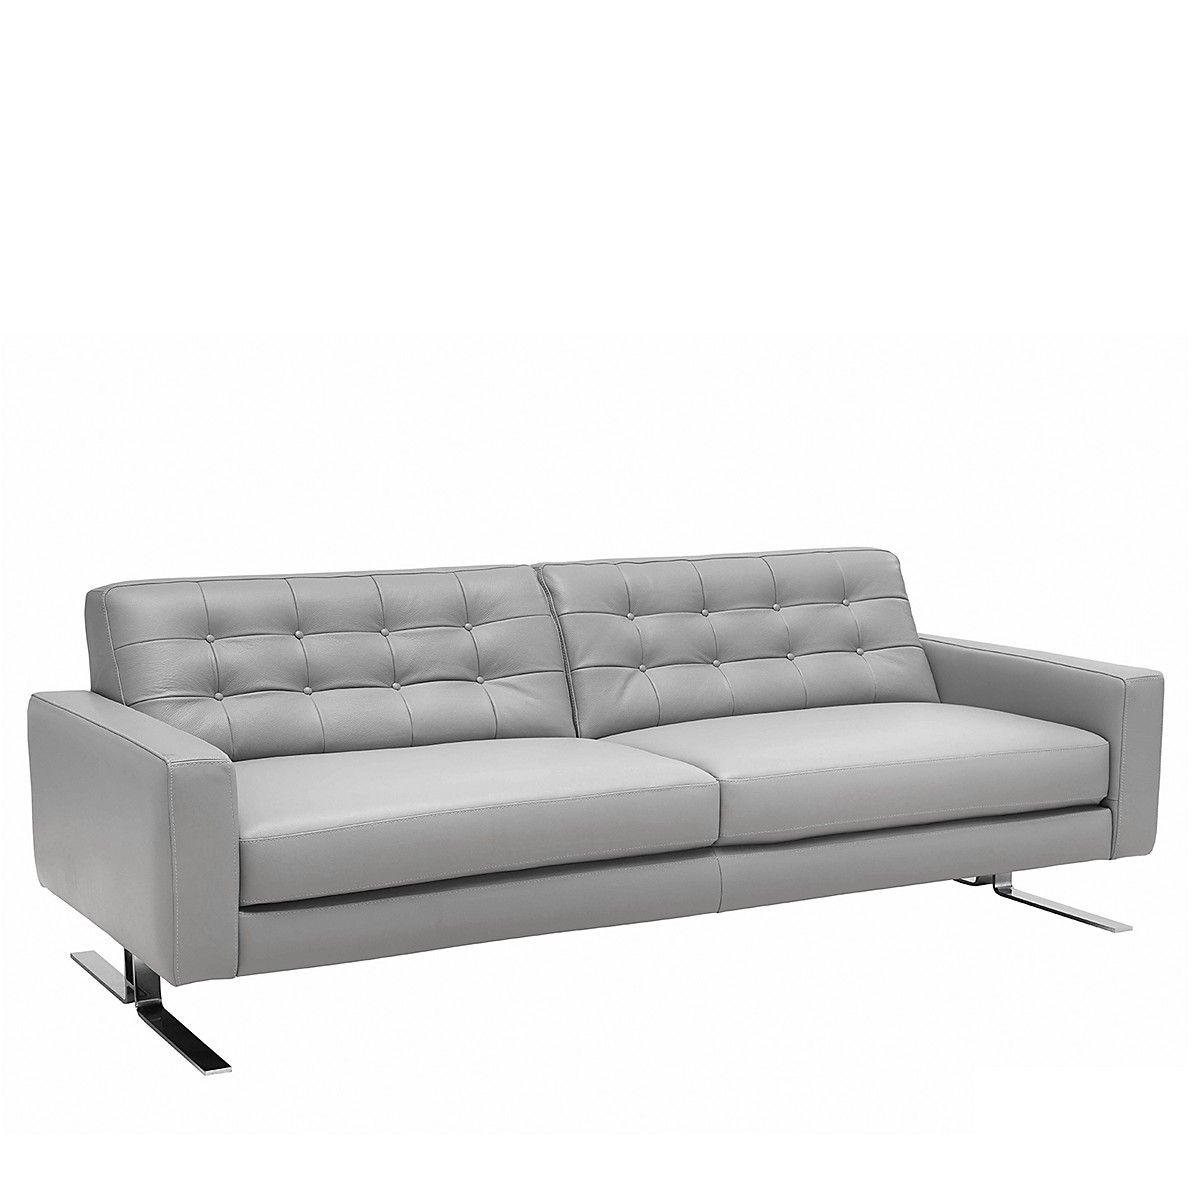 Marvelous Chateau Du0027ax Positano Sofa | Bloomingdaleu0027s Sale Price $2352 Msg. Ronnie  @248.470